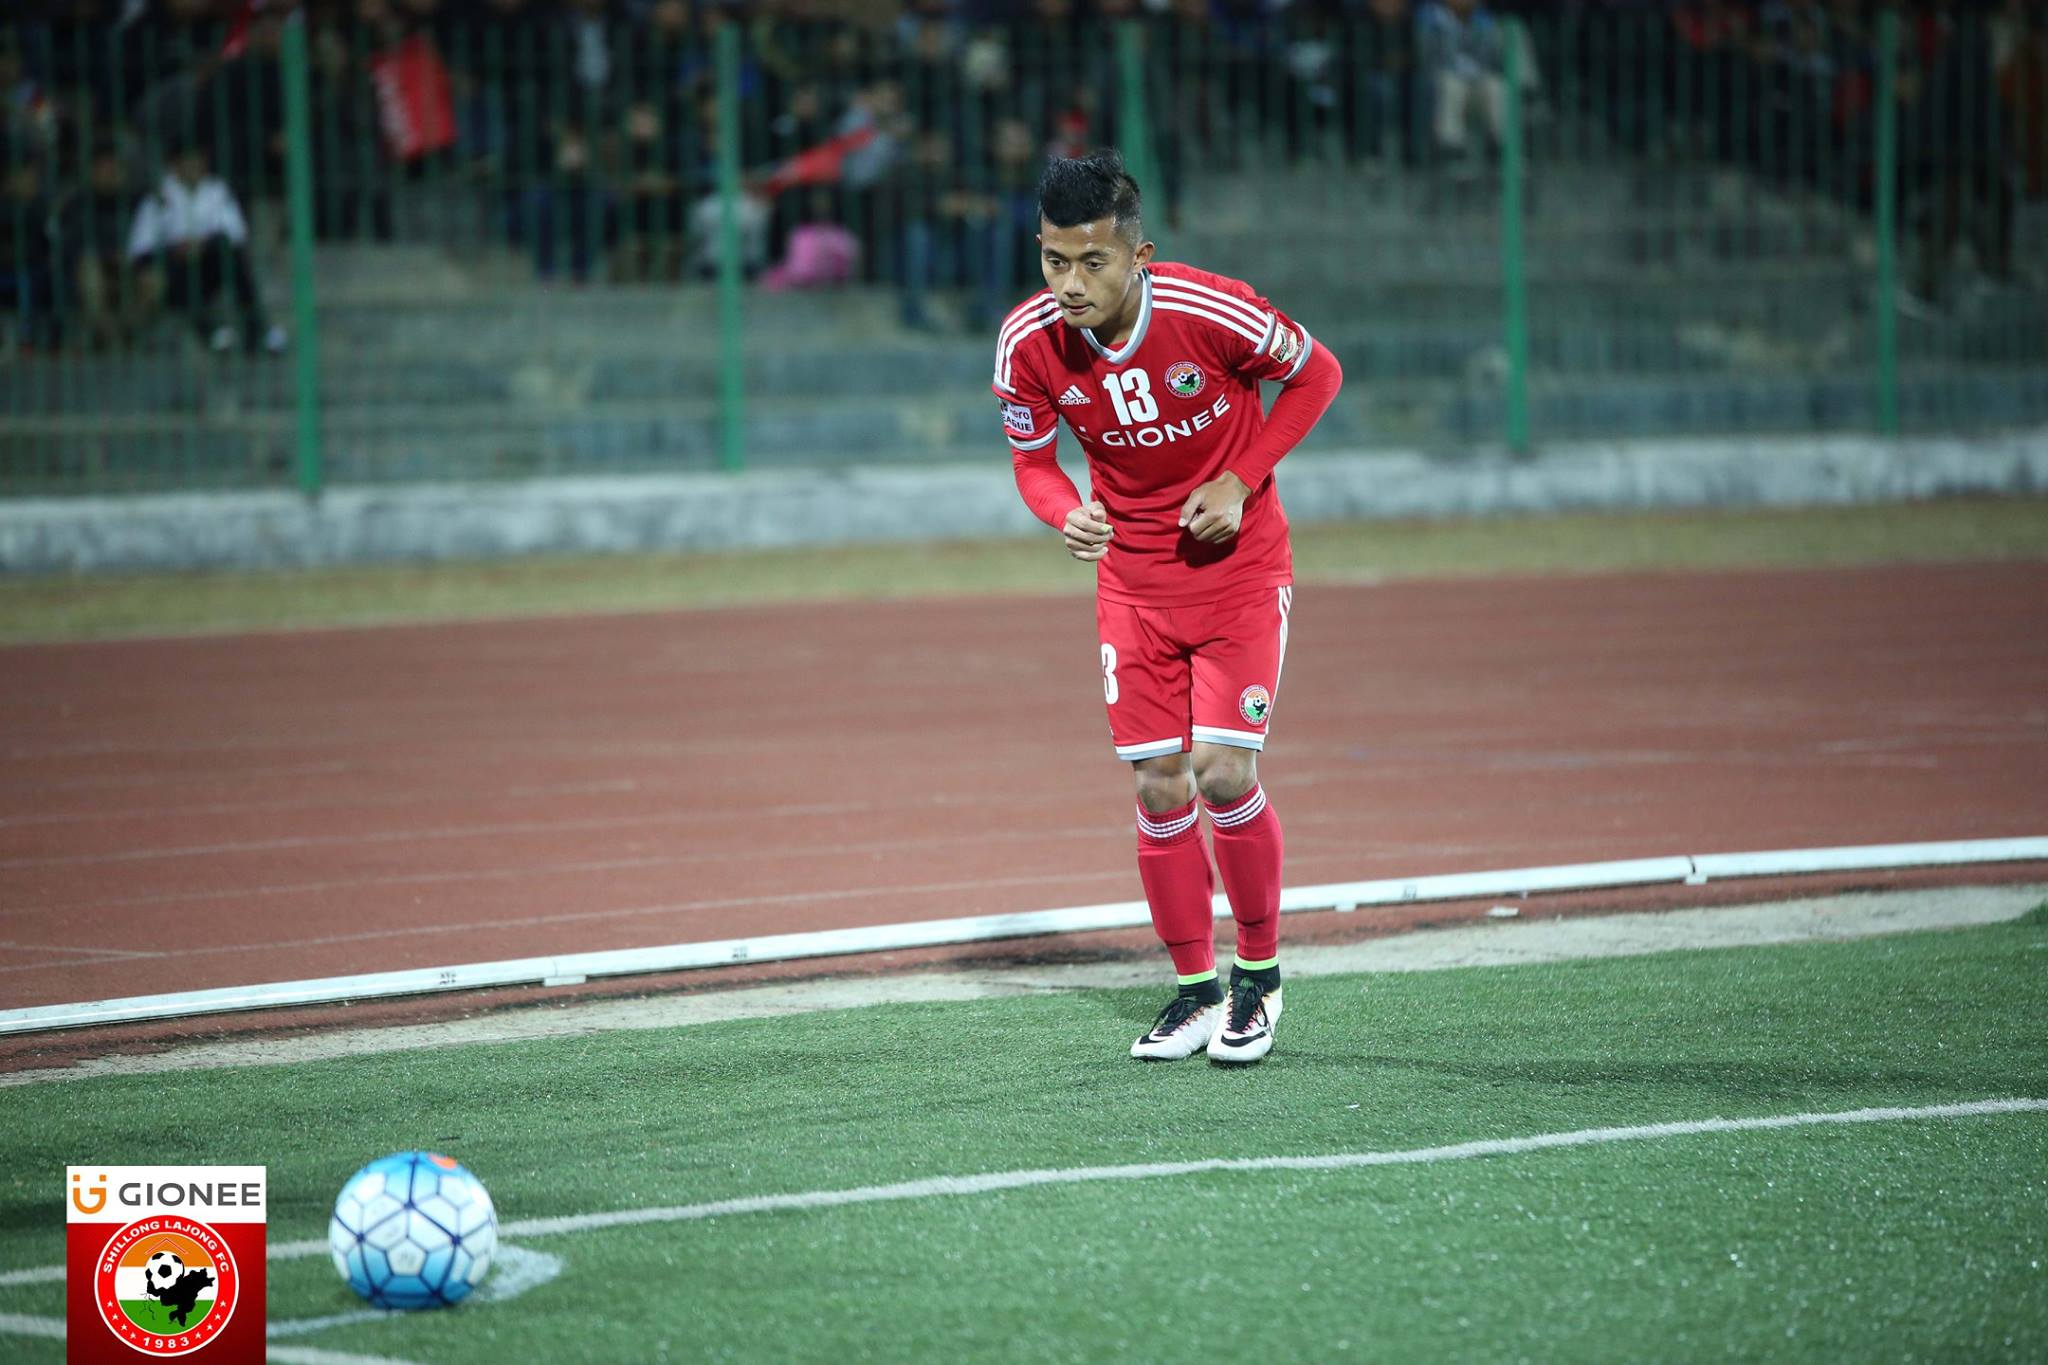 Jamshedpur FC wrap up a two-year deal for Isaac Vanmalsawma from Chennaiyin FC.